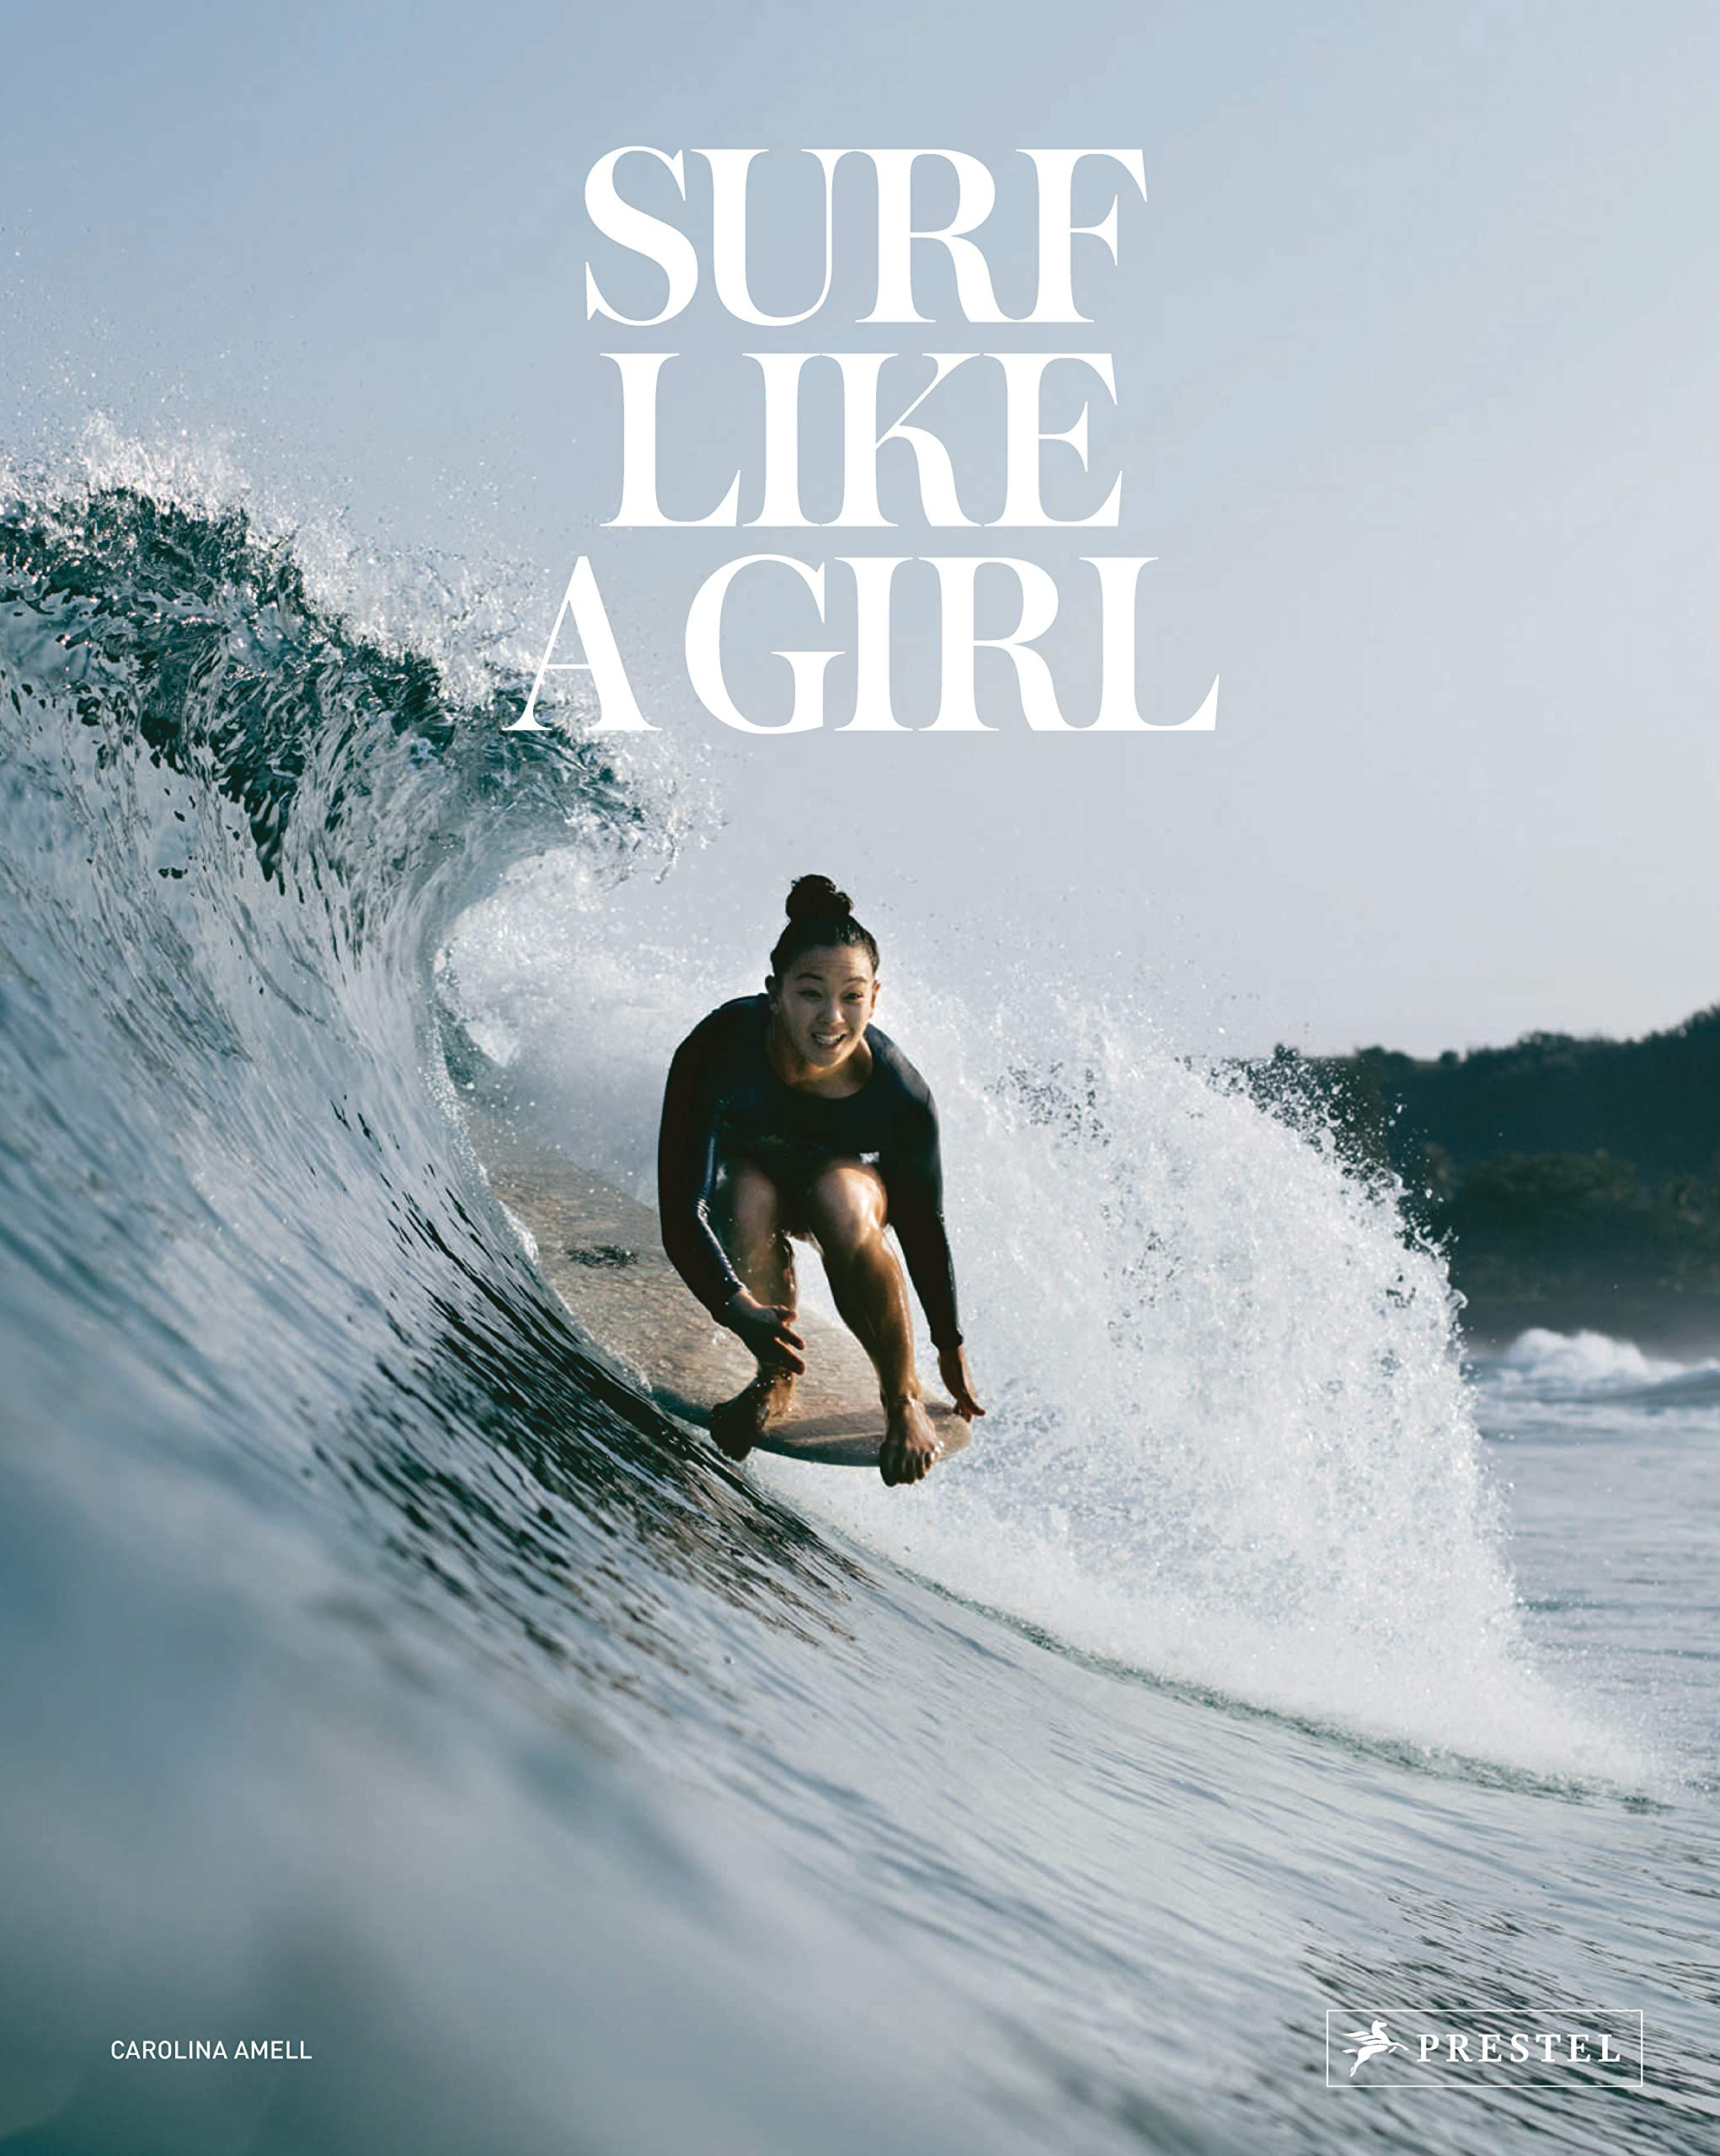 Surf like a girl by carolina amell